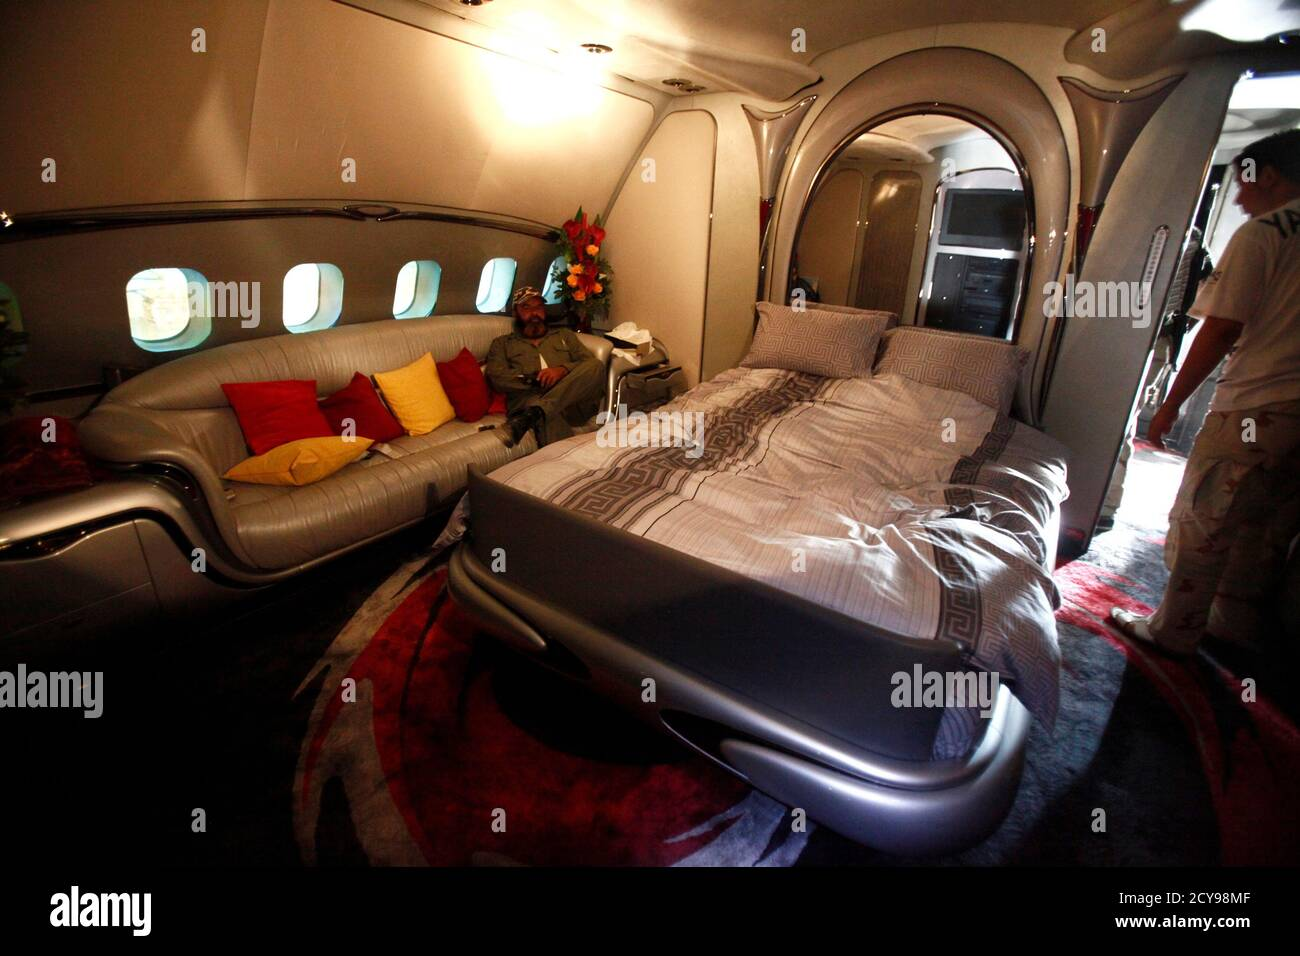 A Libyan Rebel Fighter Sits In A Bedroom Of Muammar Gaddafi S Private Plane At The International Airport In Tripoli In An August 28 2011 File Photo The Secretive Sale Of A Private